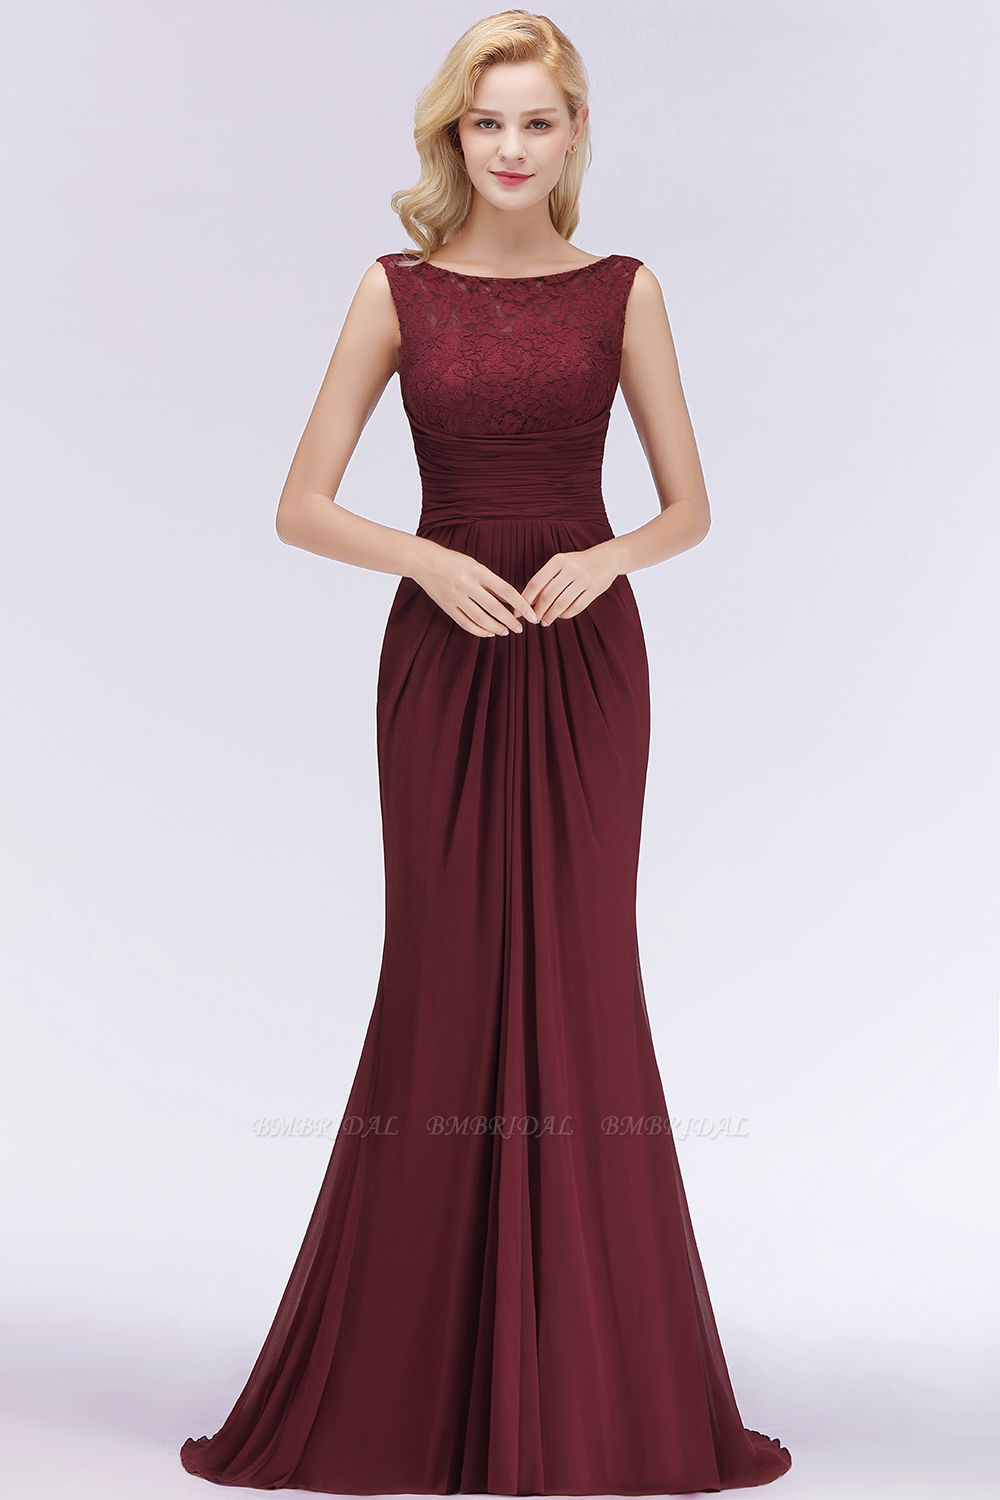 BMbridal Mermaid Scoop Sleeveless Lace Burgundy Bridesmaid Dresses with Pleats